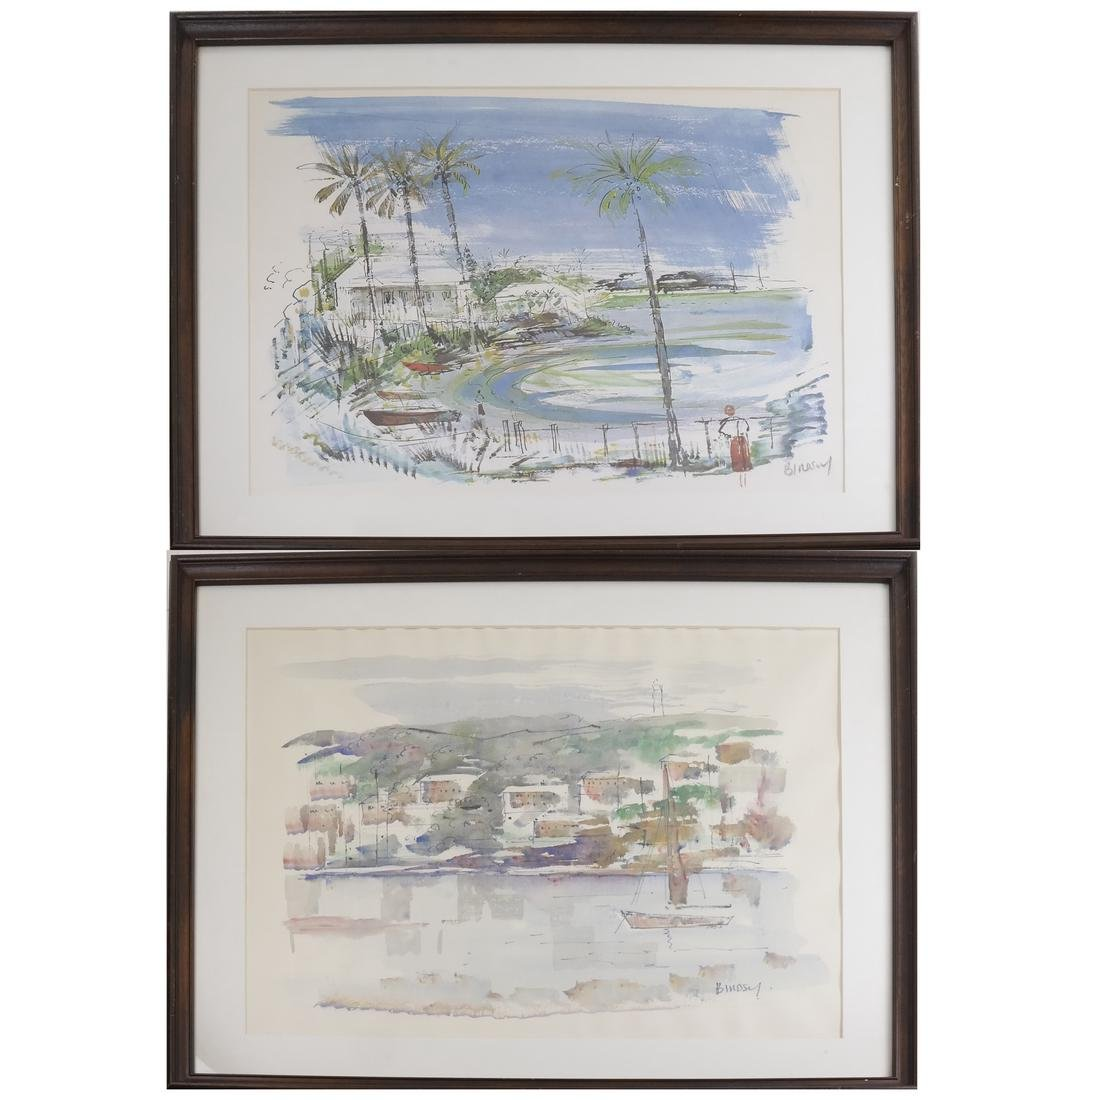 After Birdsey, Pair of Harbor Scenes, Watercolor